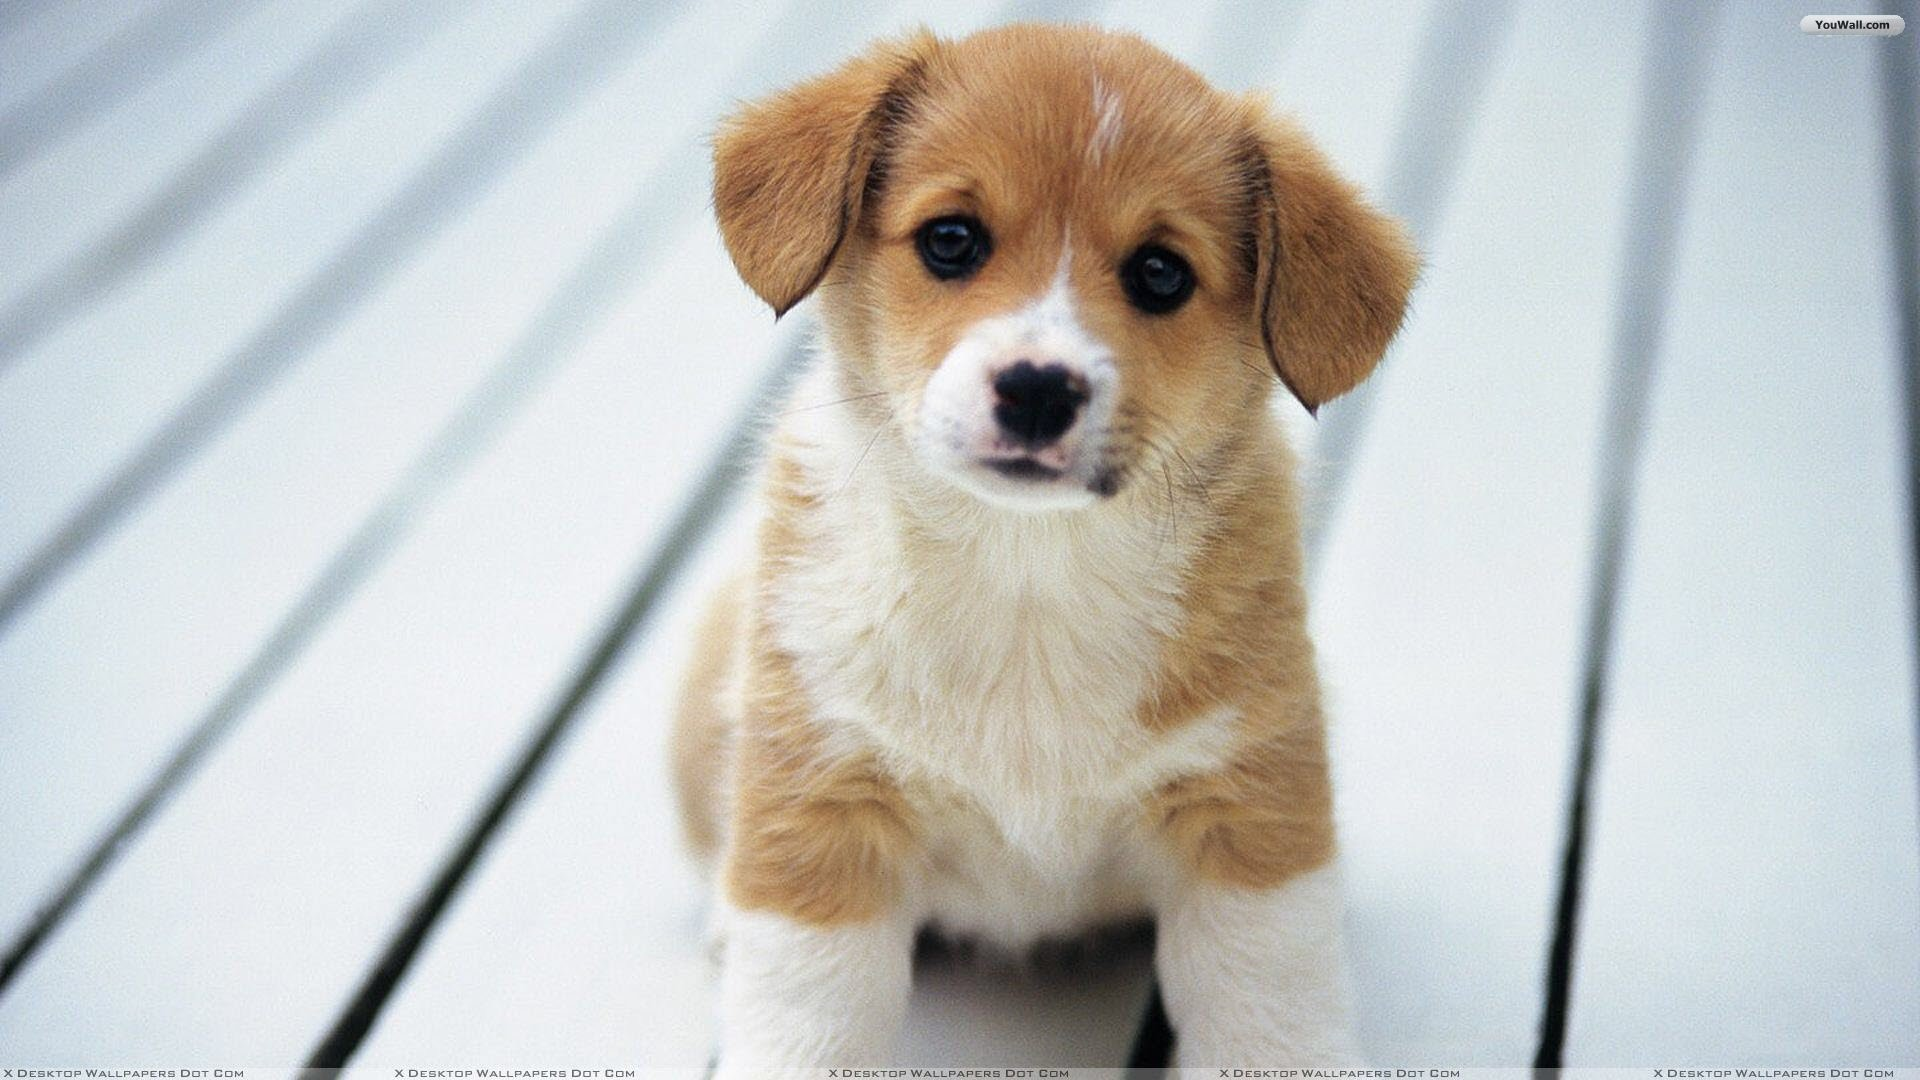 Puppy Wallpaper for Computer 53 images 1920x1080